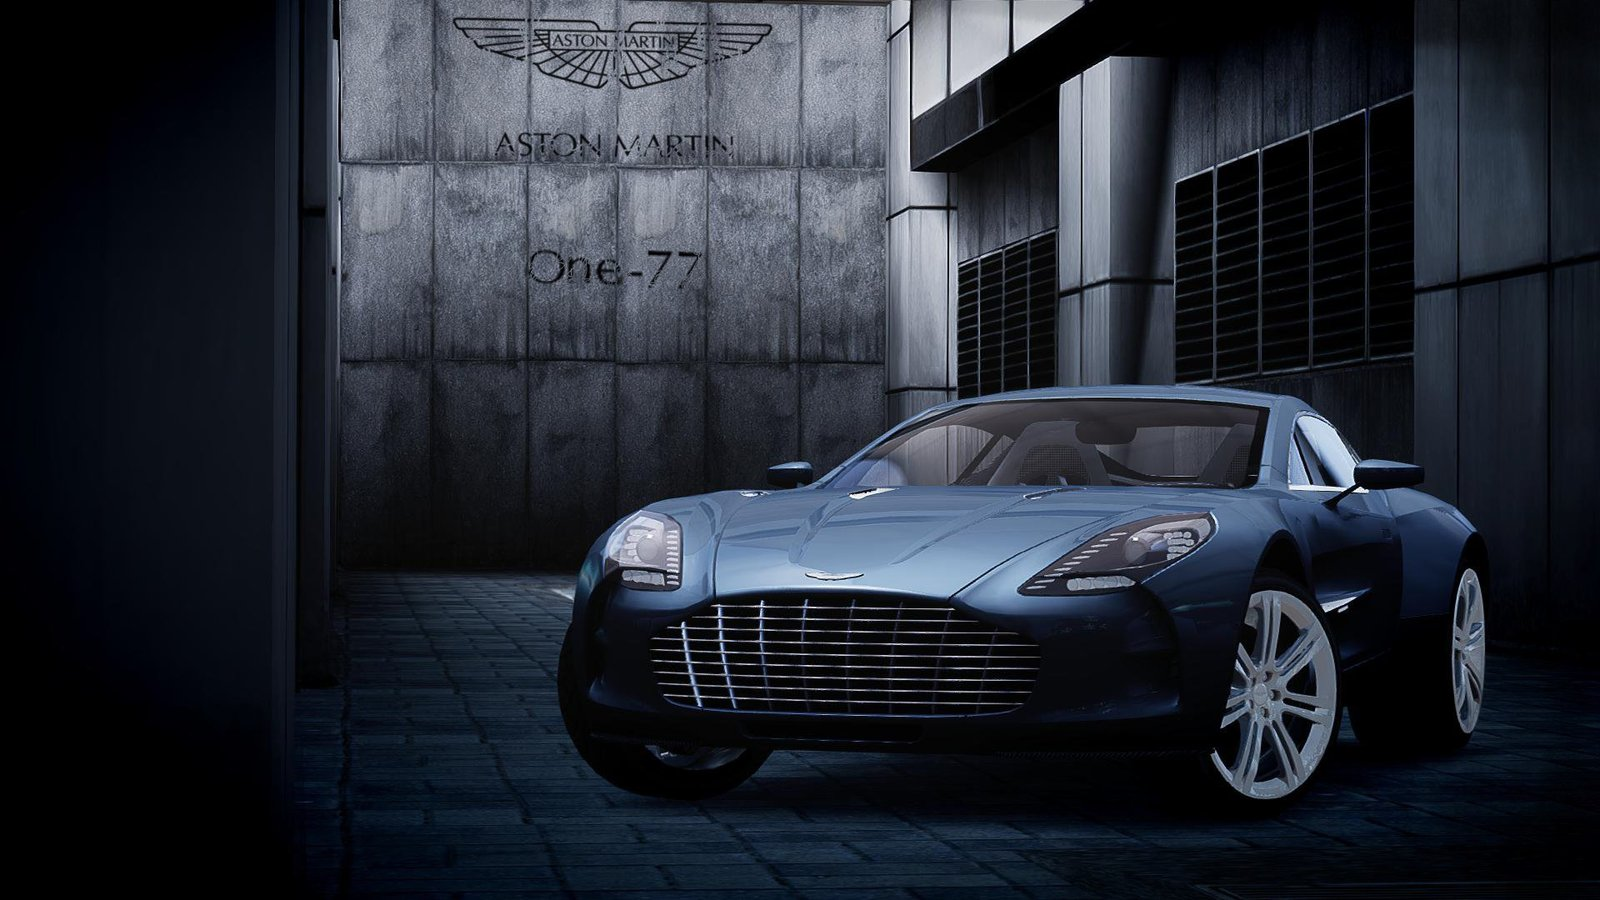 Aston Martin One 77   Wallpaper HD by ALIM16 on deviantART 1600x900